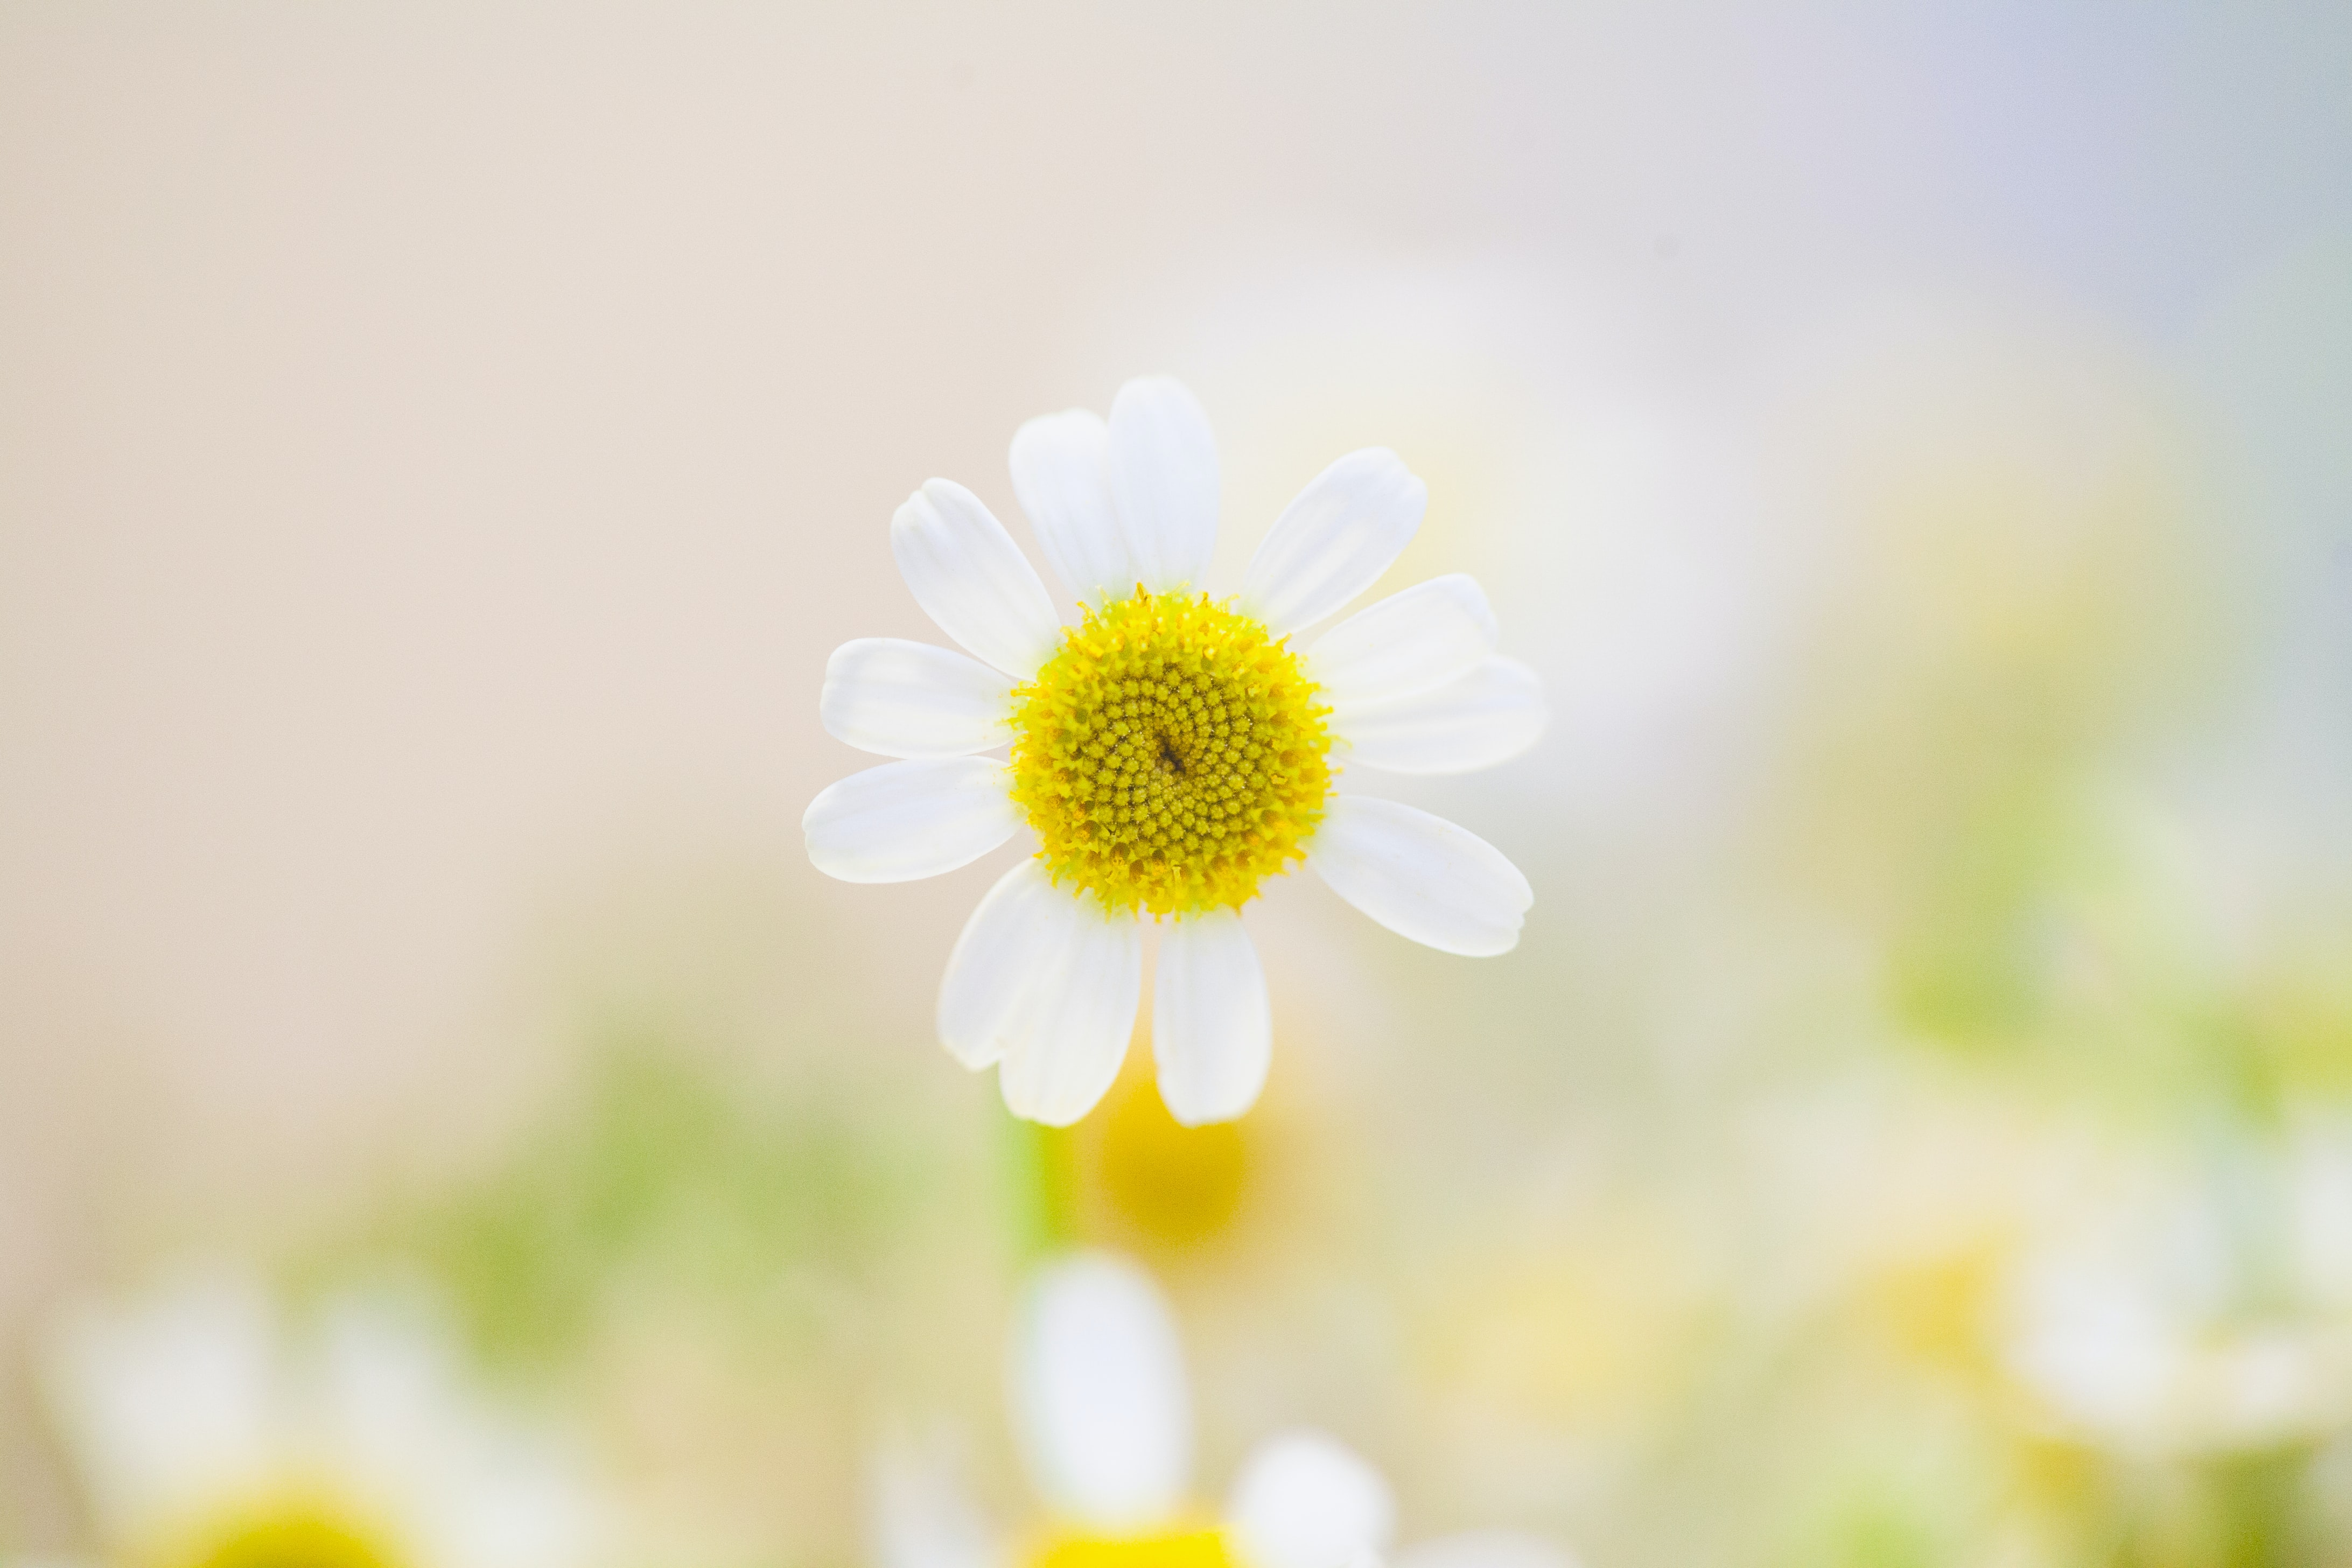 white daisy flower in bloom